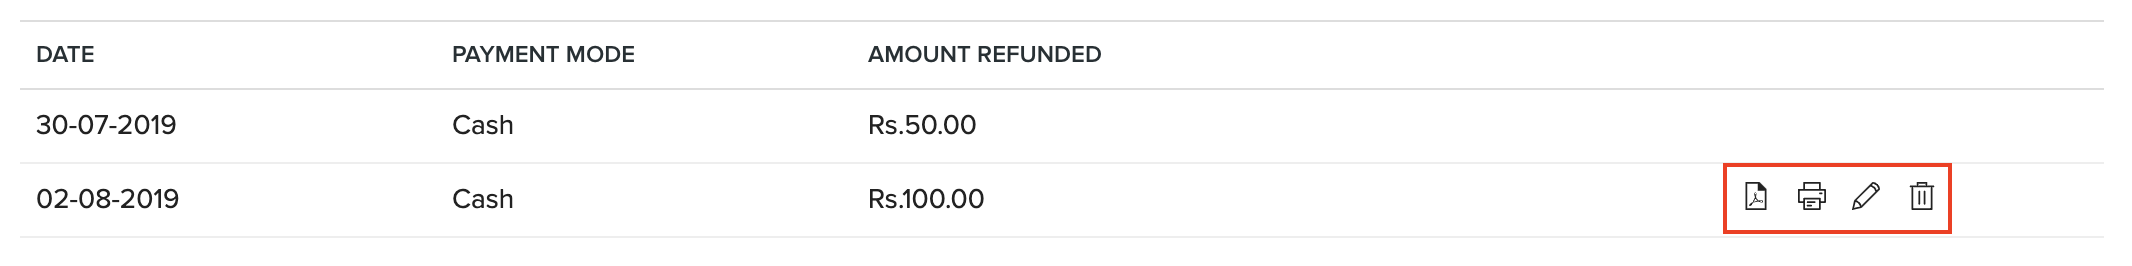 Actions on Refunds